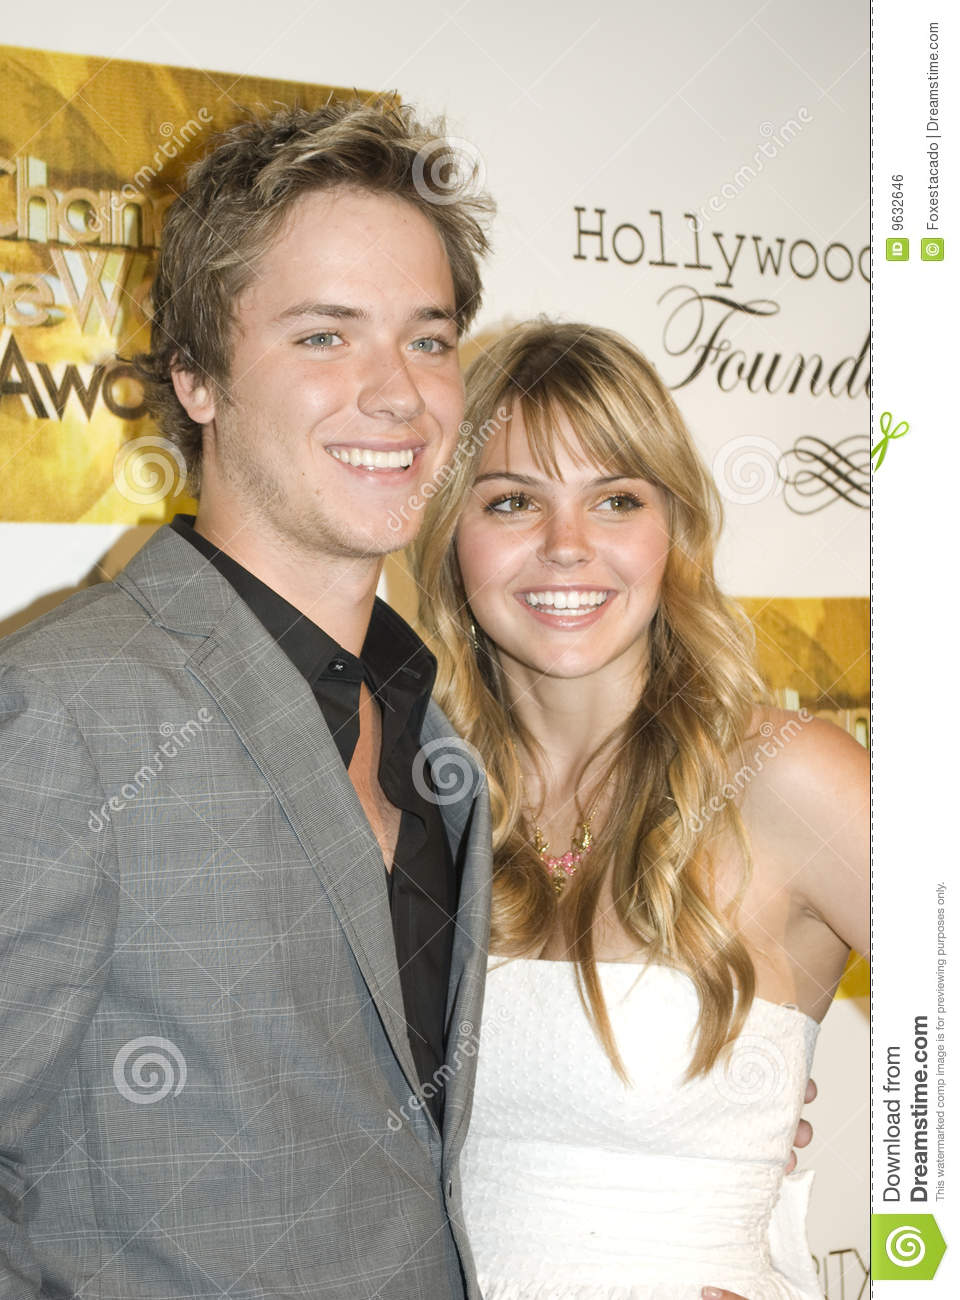 Aimee teegarden and jeremy sumpter dating. how often should you contact someone you're dating.